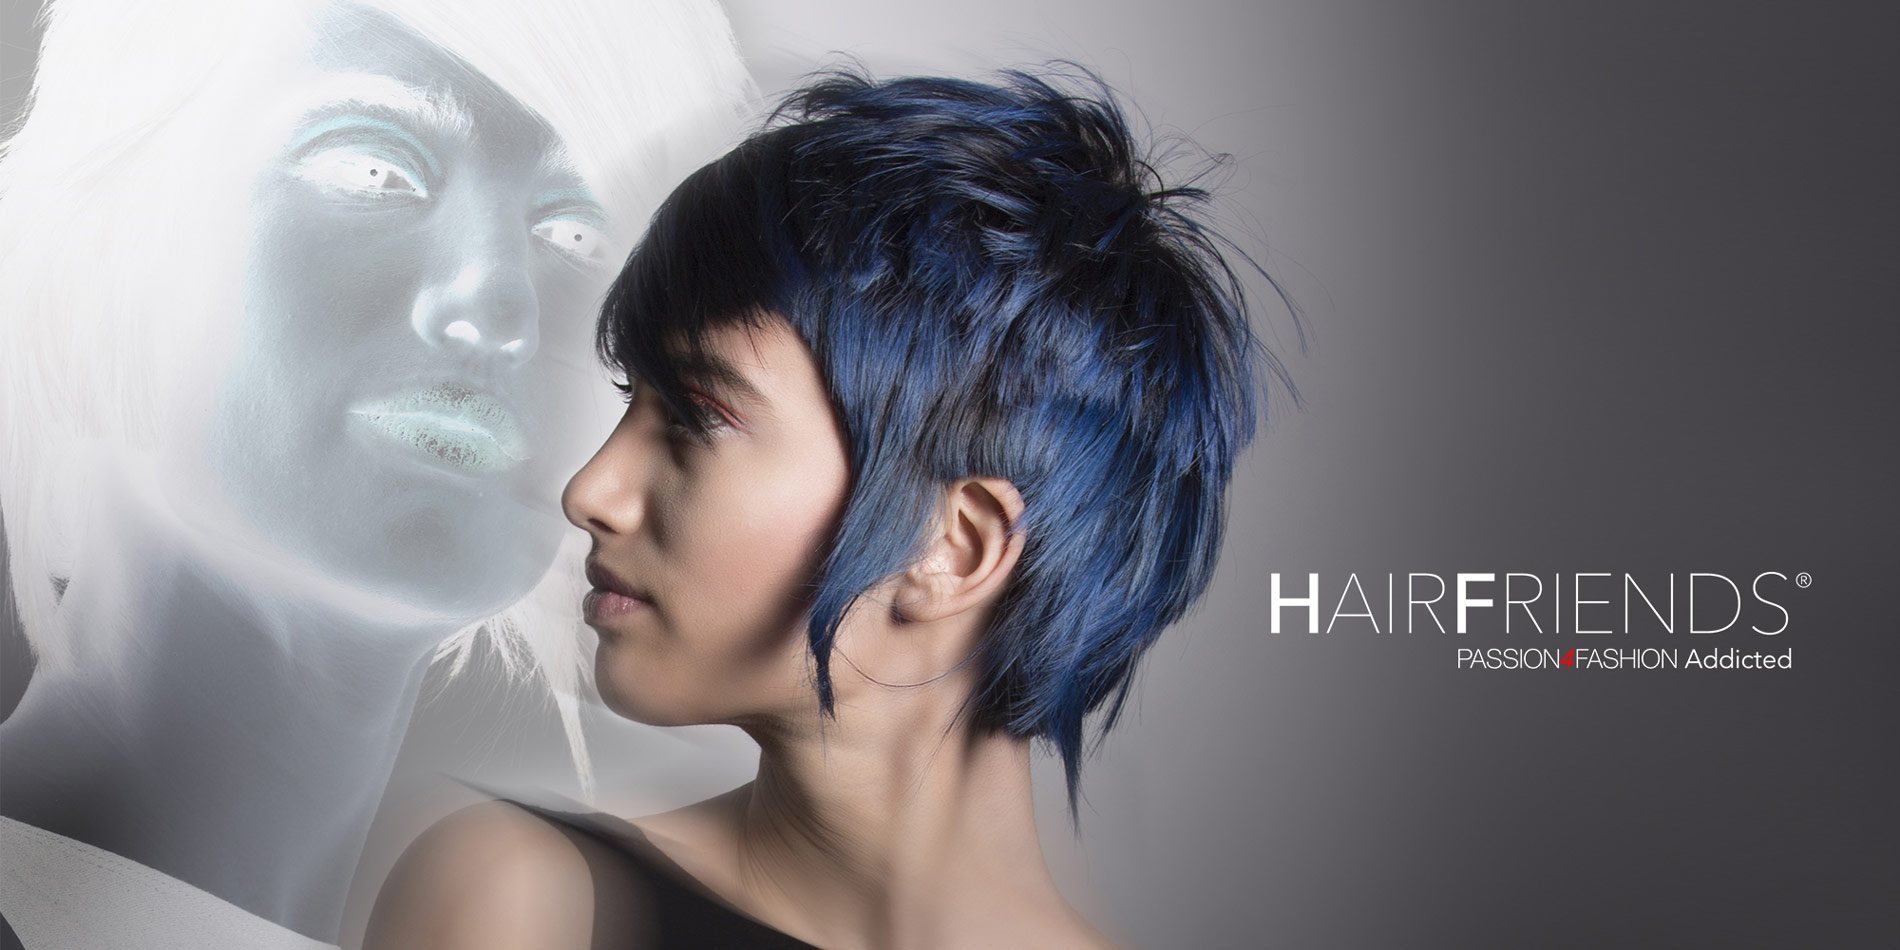 progetto hairfriends passion4fashion